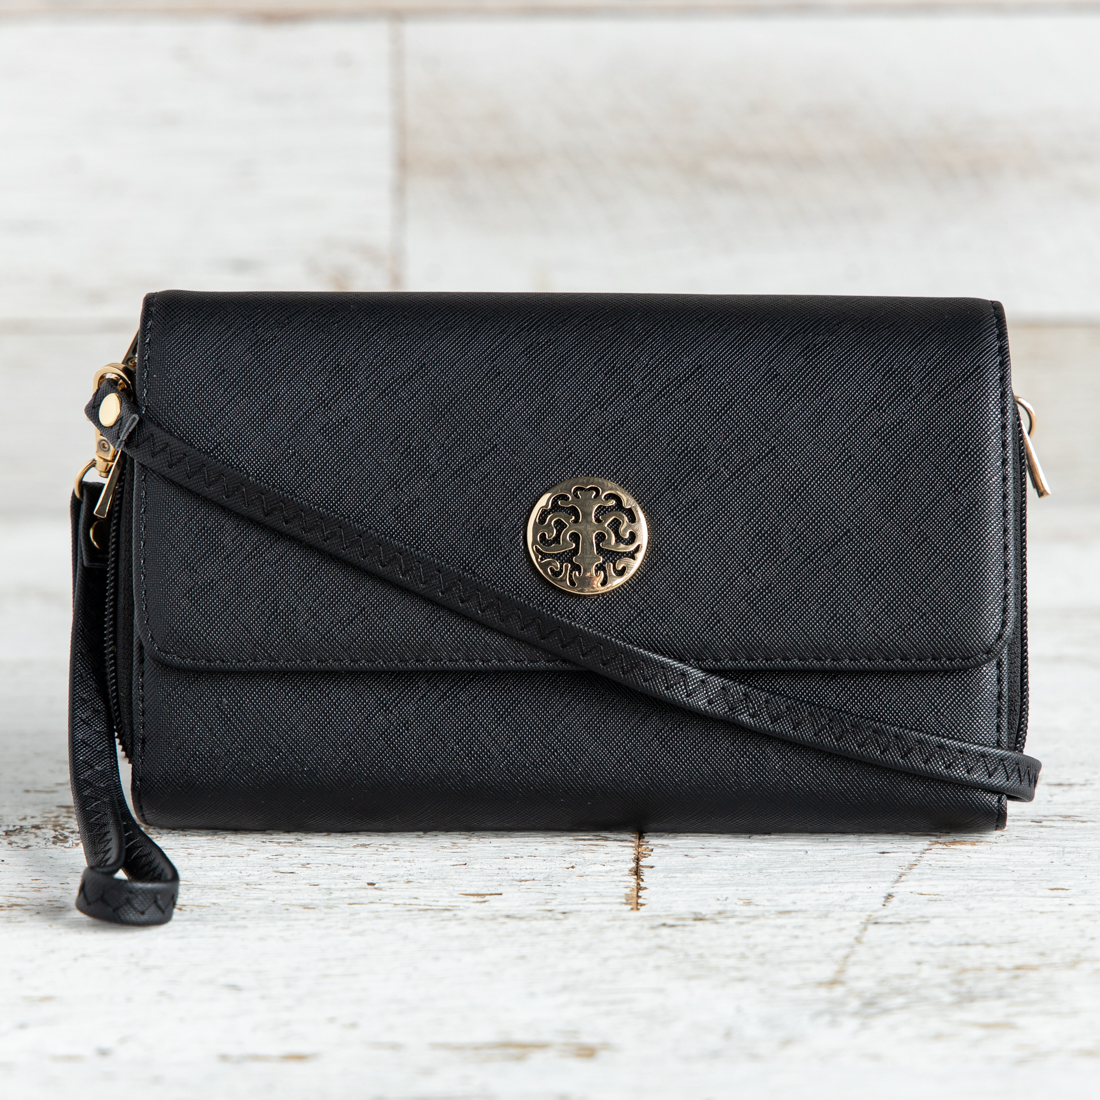 0f39c8f79a70 Black Medallion Crossbody Bag